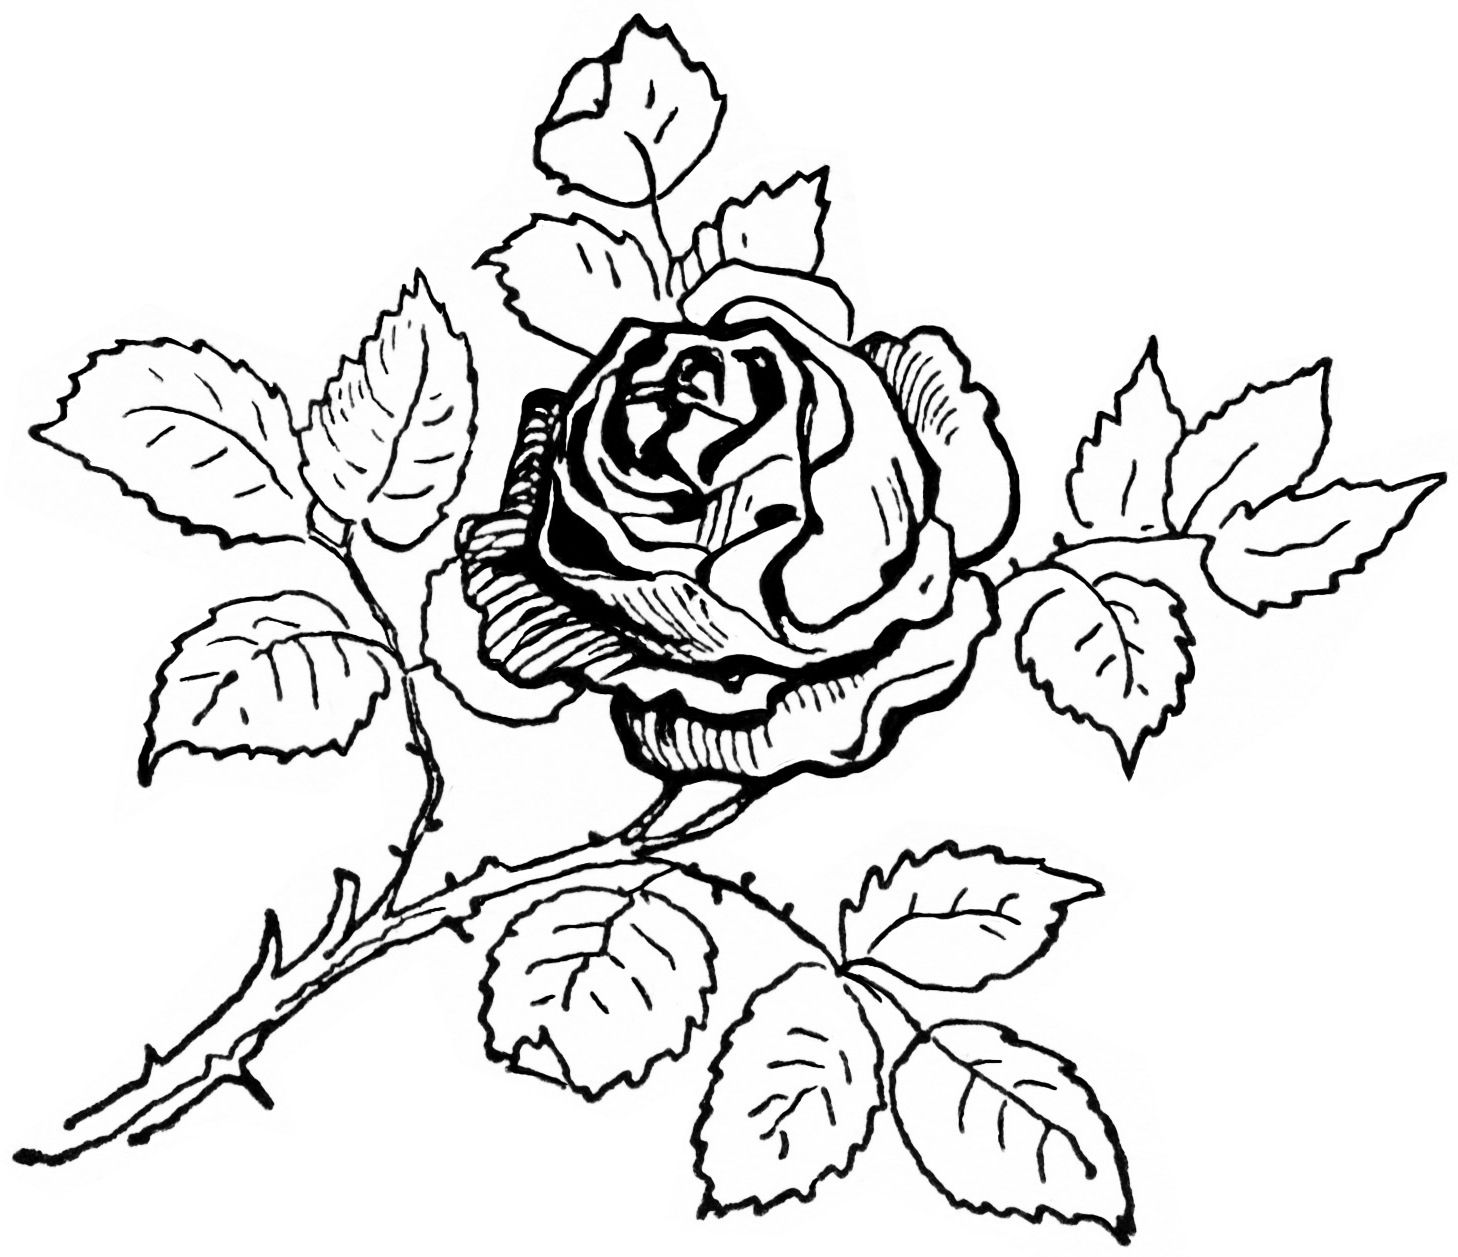 Coloring Rose Pages Rose Coloring Pages Flower Coloring Pages Coloring Pages